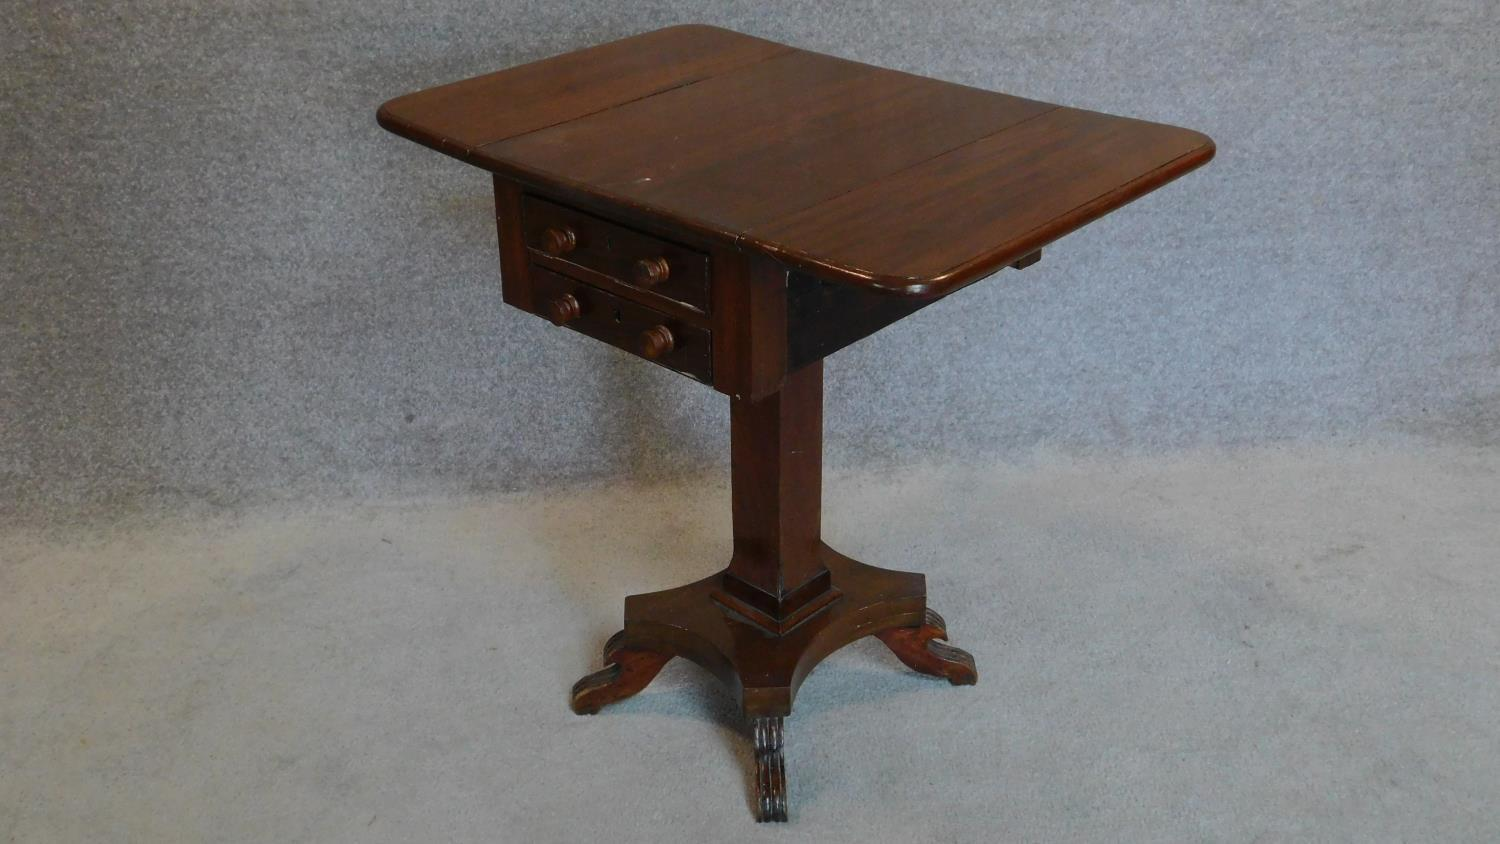 Lot 12 - A 19th century mahogany drop flap work table fitted frieze drawers. 69x71x49cm